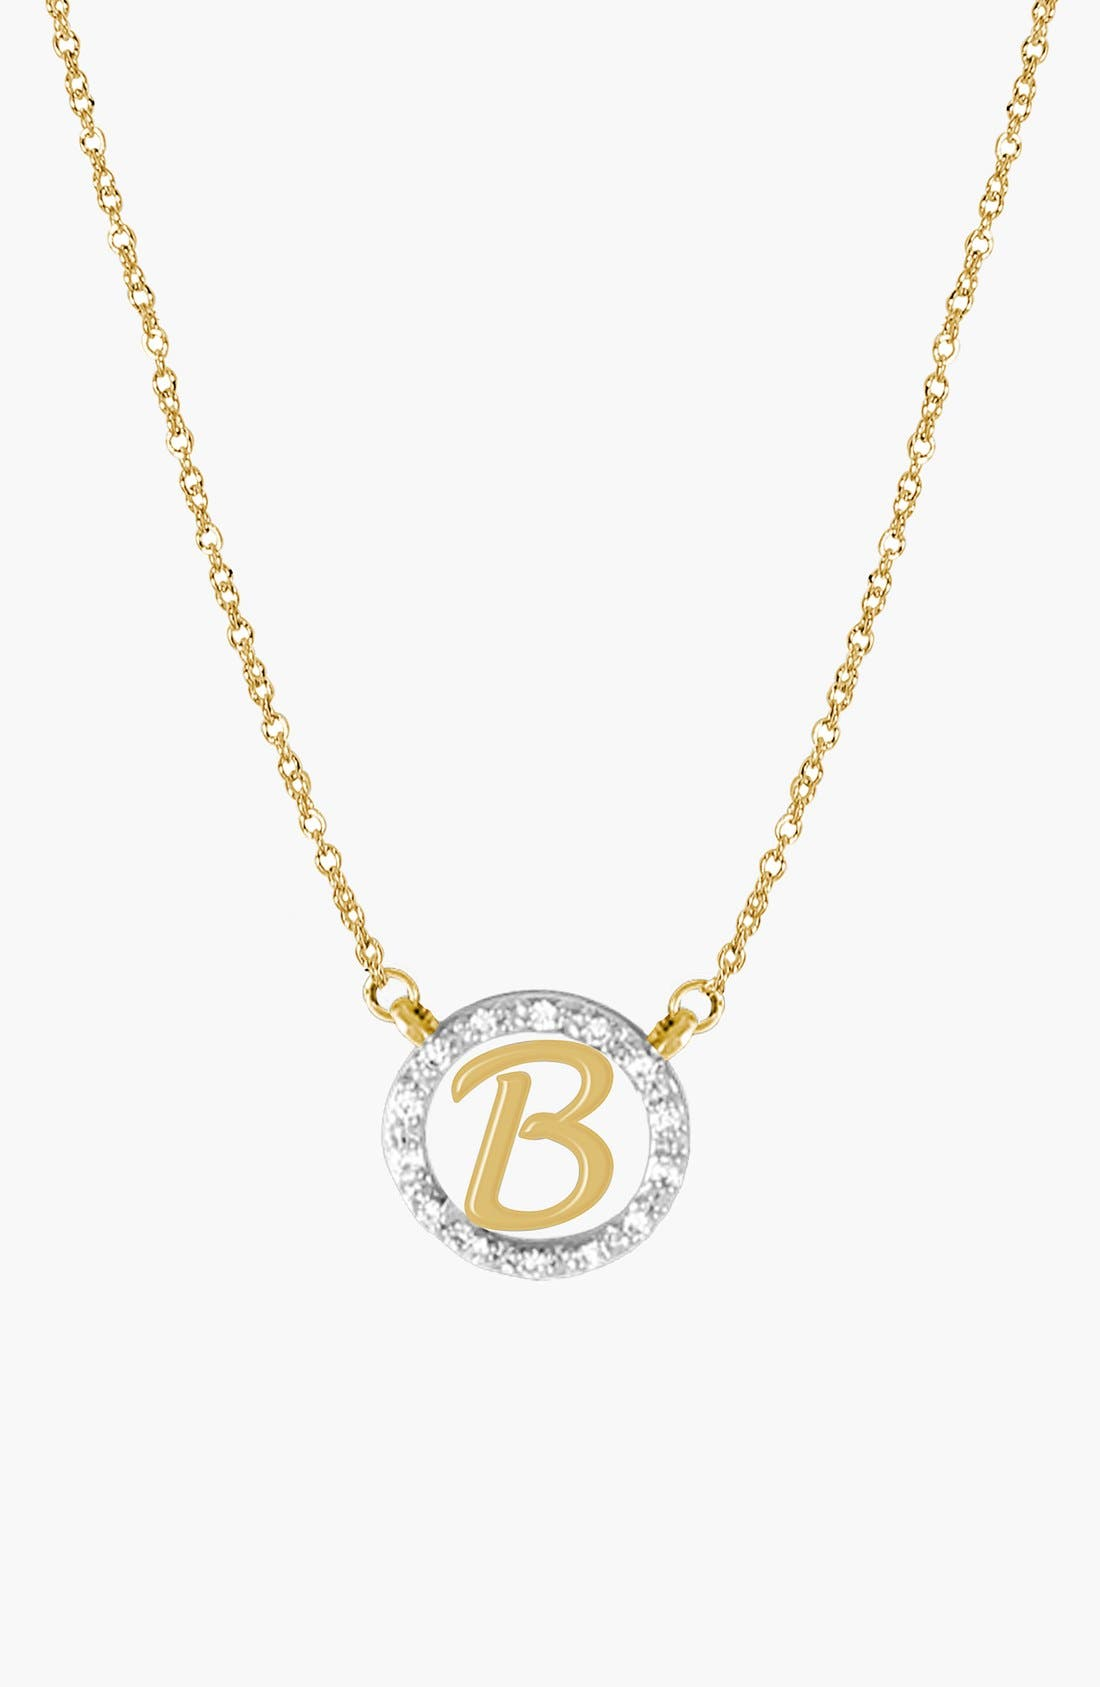 Diamond Pavé Initial Pendant Necklace,                         Main,                         color, YELLOW GOLD - B